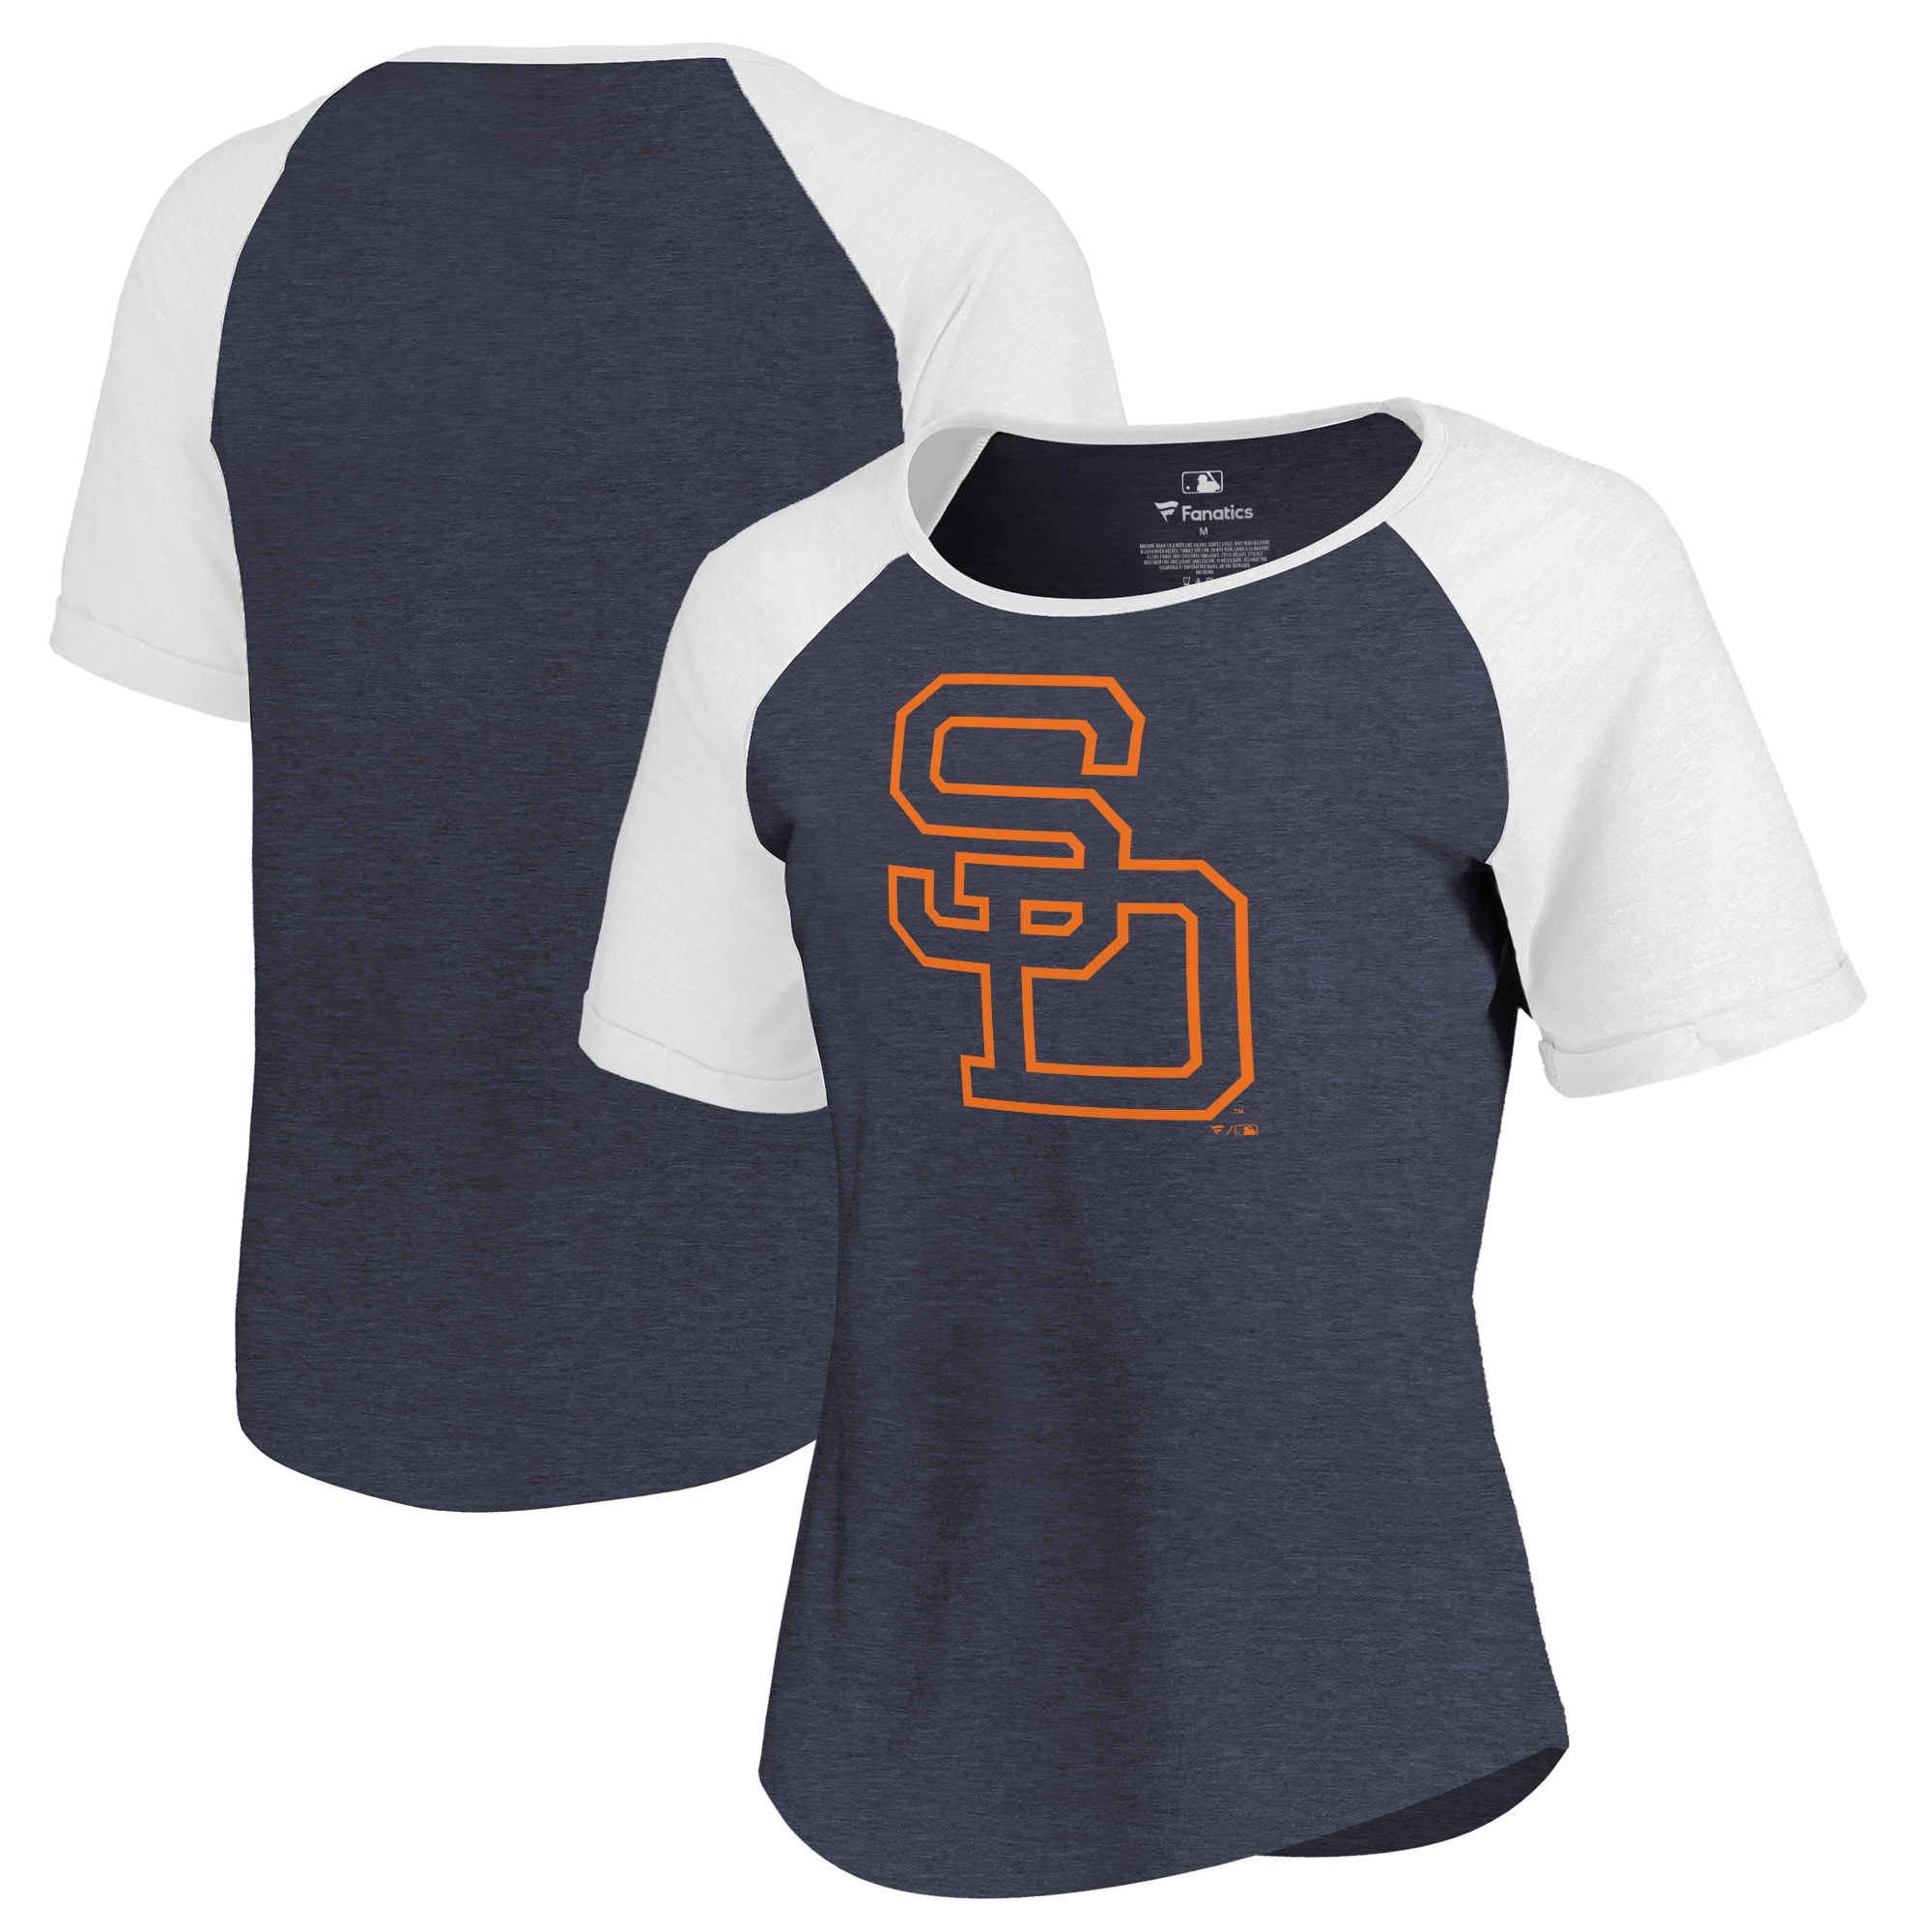 San Diego Padres Fanatics Branded Women's Huntington Cooperstown Collection Tri-Blend T-Shirt - Navy